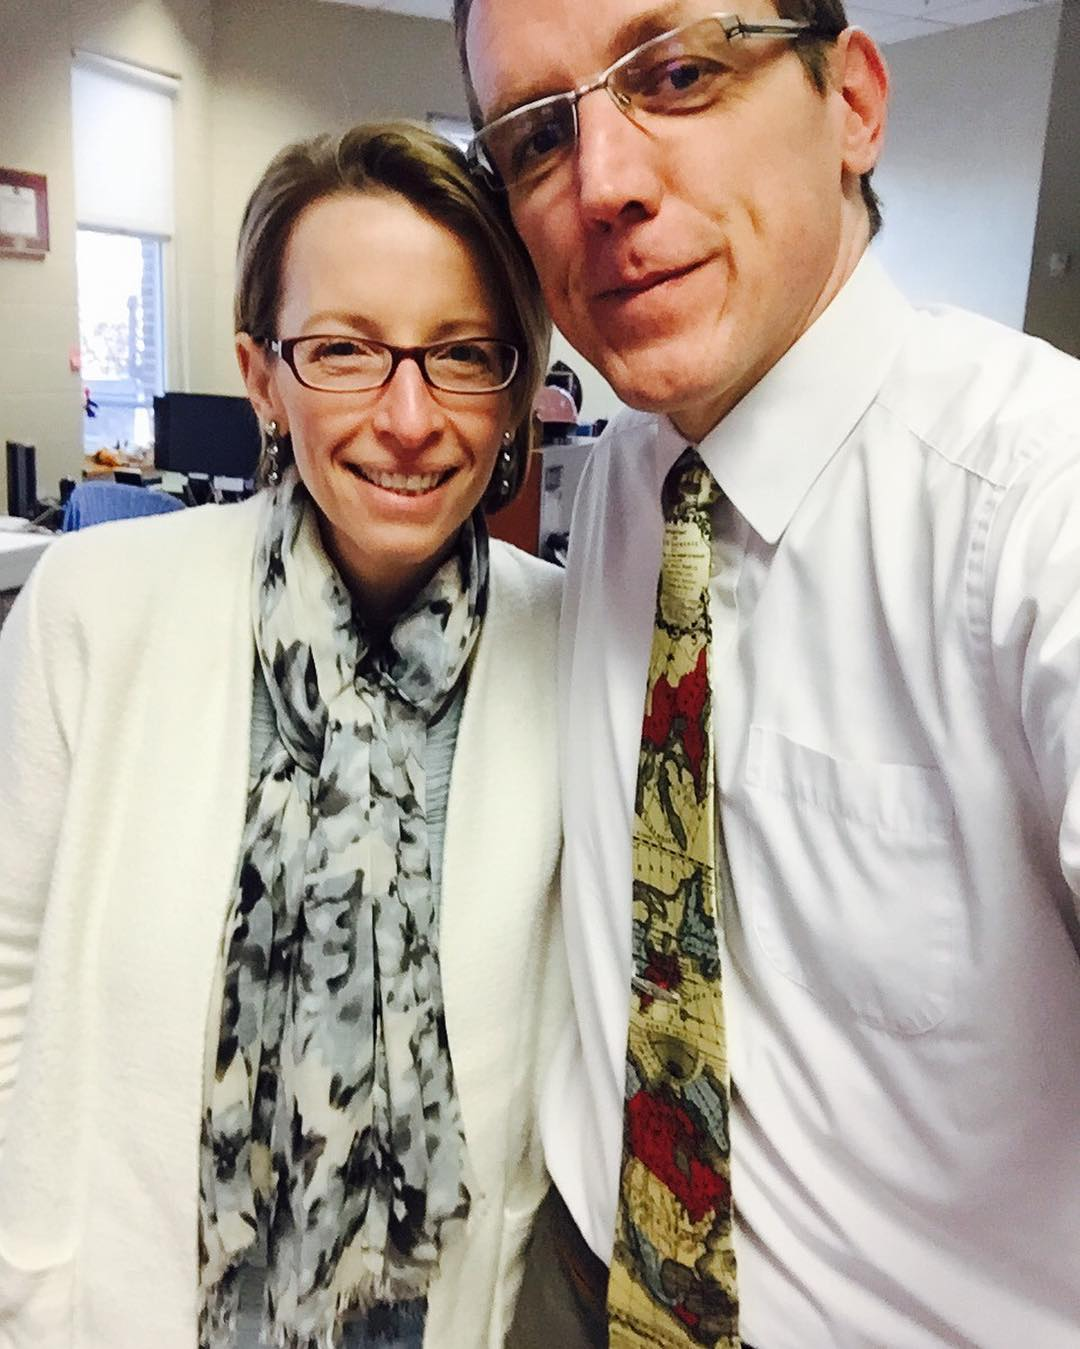 Voyage themed #tiedayfriday for our esteemed and awesome CIO's last day. Will miss her greatly. #raerules